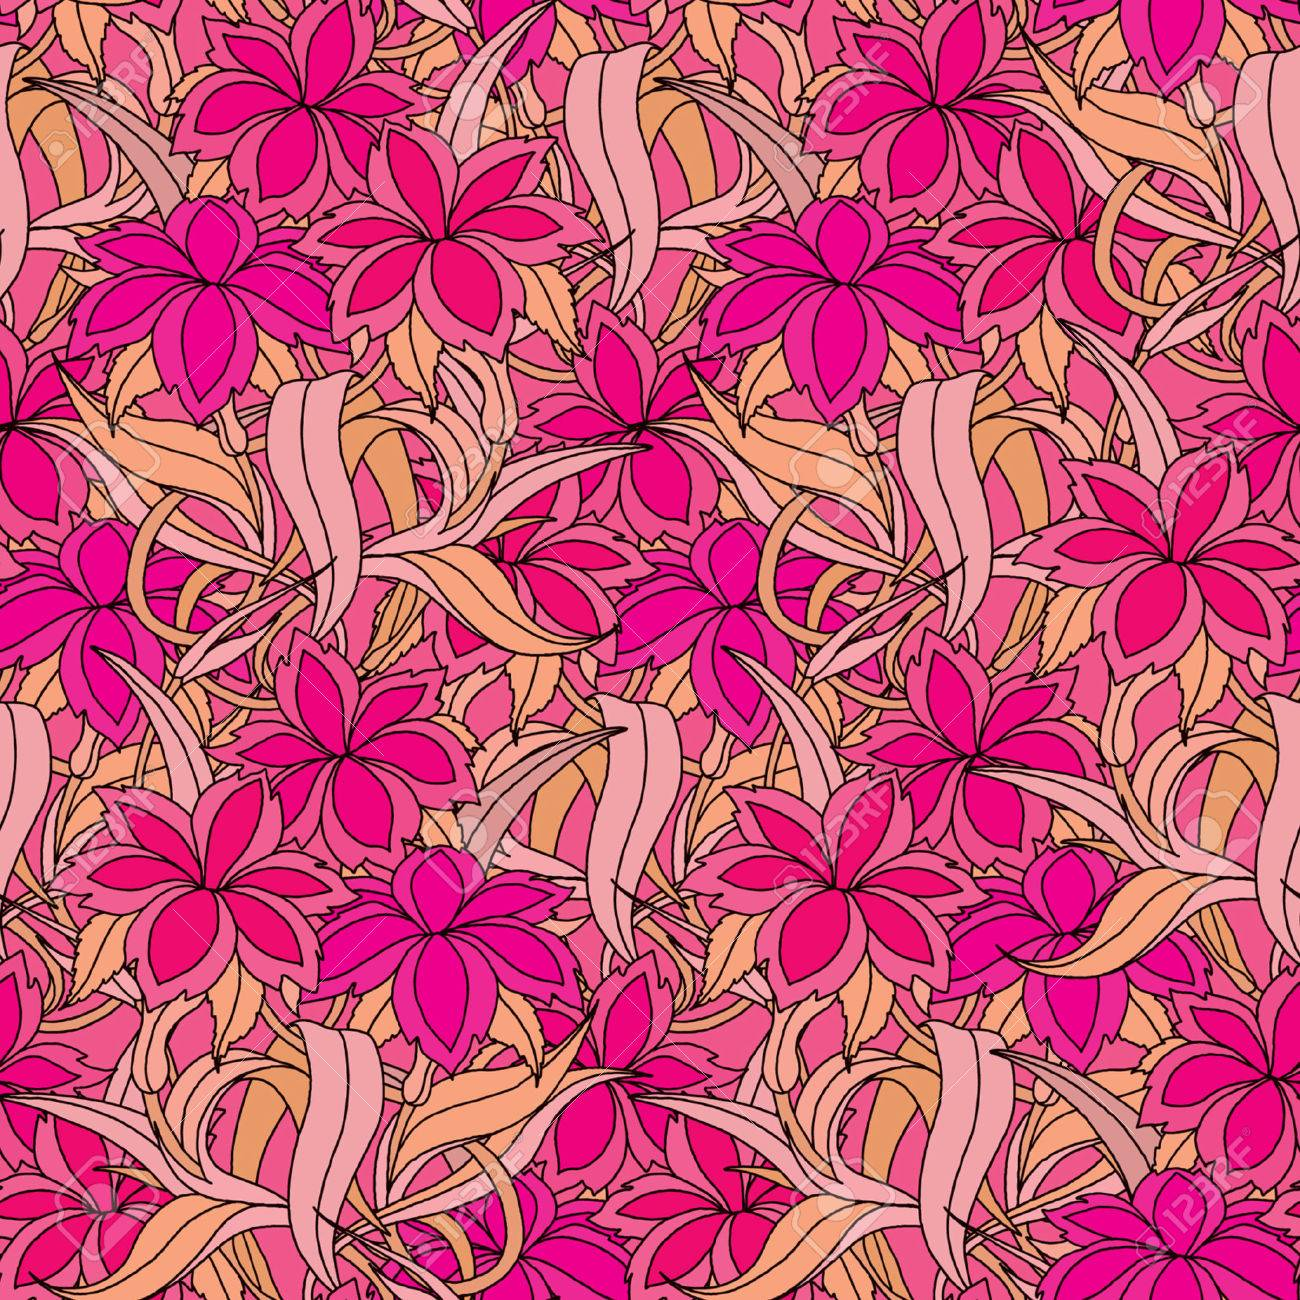 Elegance Seamless pattern with flowers, vector floral illustration in vintage style Stock Vector - 24899290